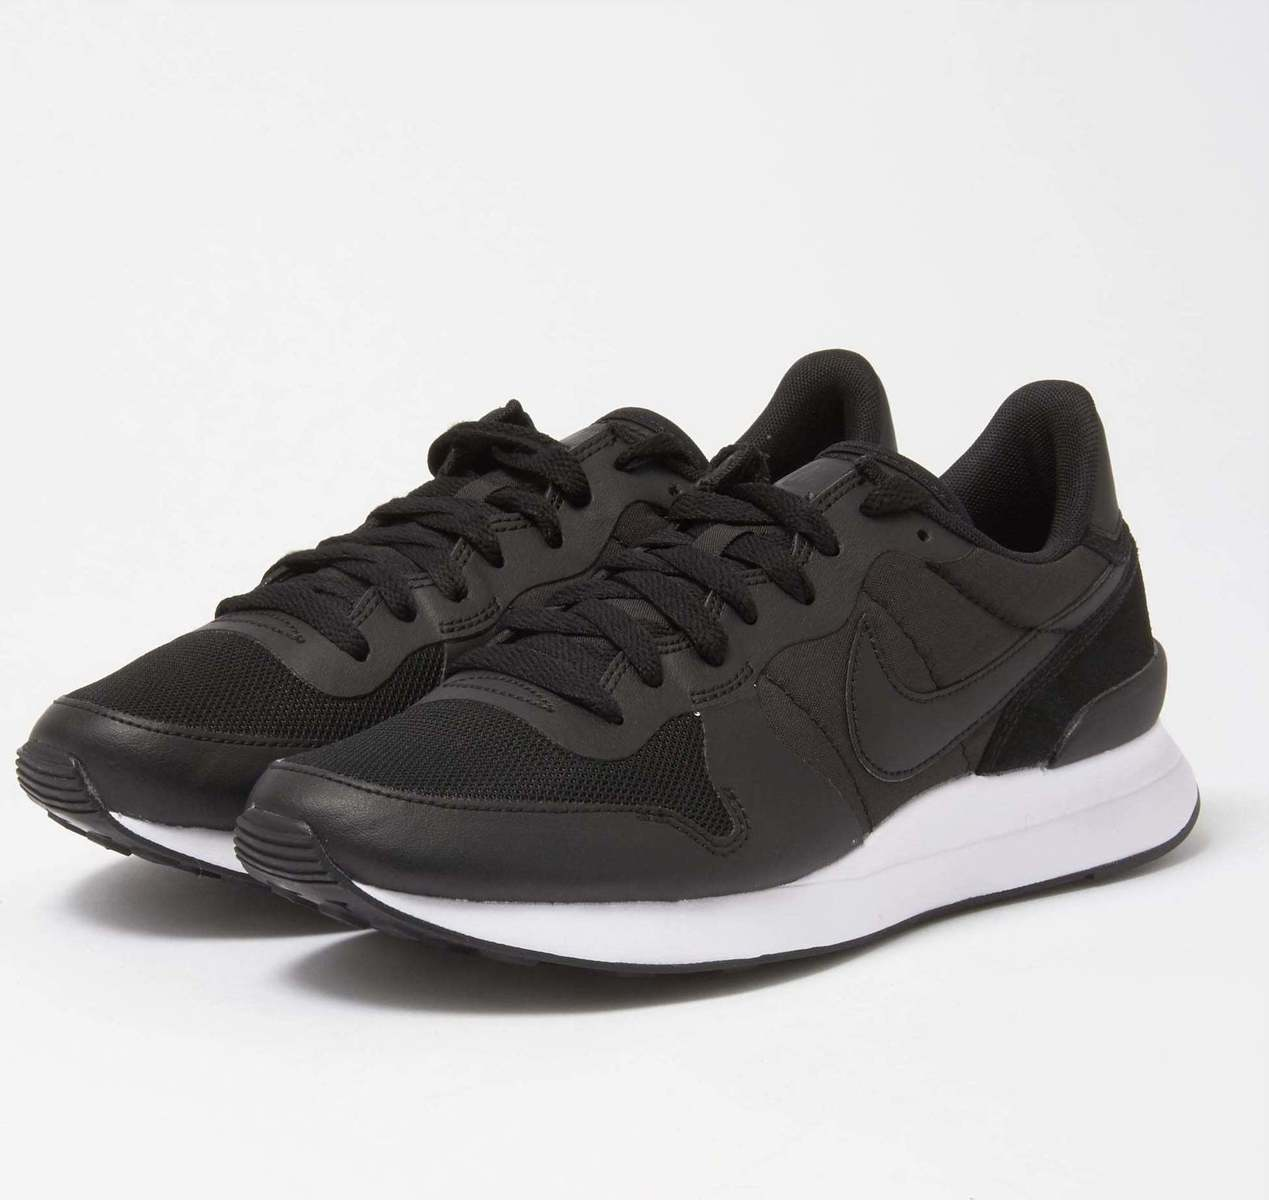 c07b11d8e8e Nike Internationalist LT17 · Nike Internationalist LT17 ...